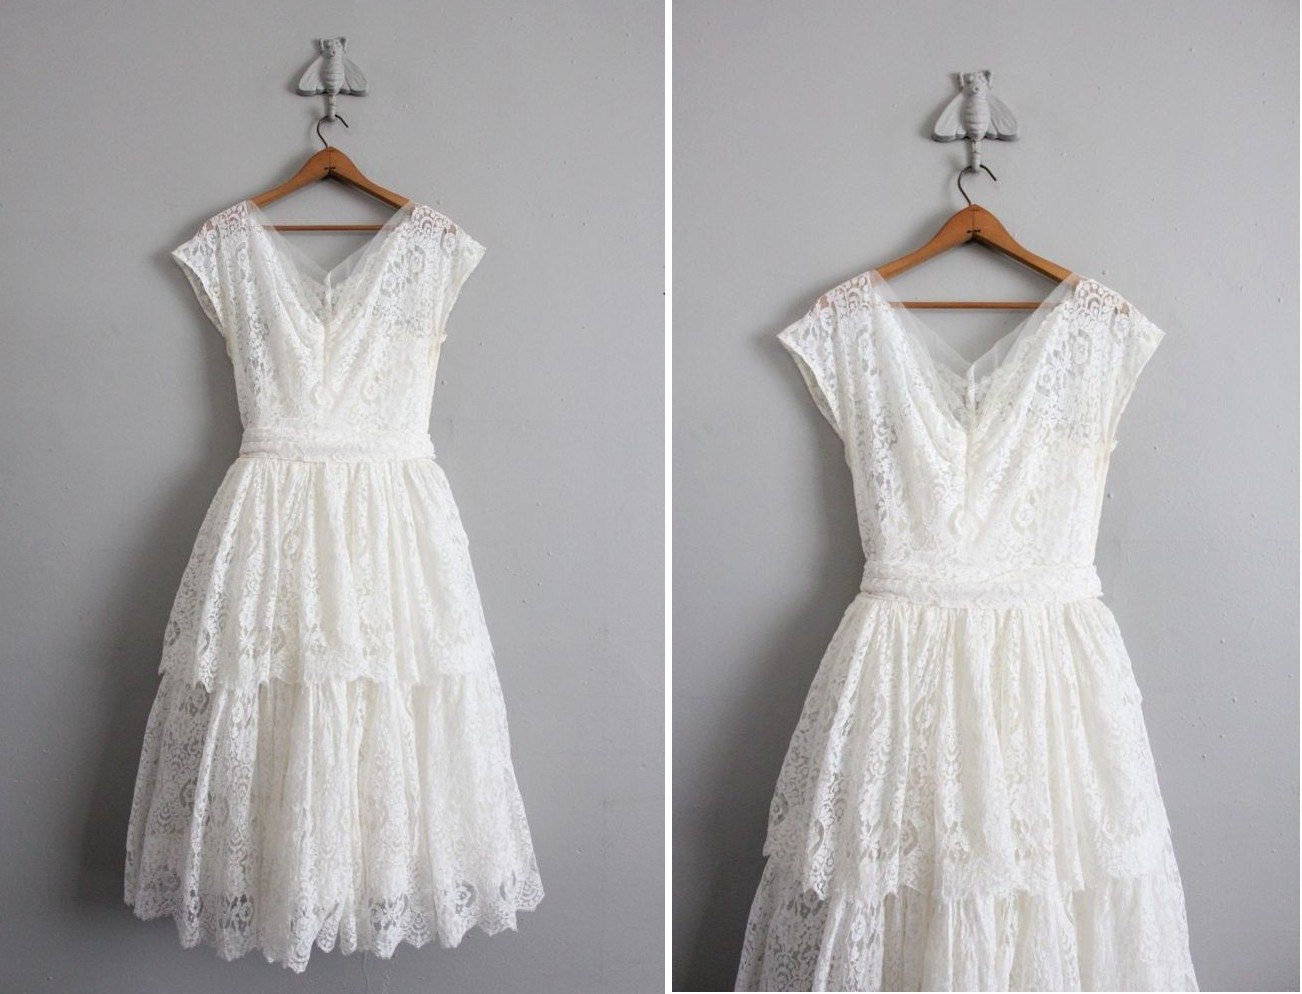 1950s vintage white lace wedding dress for Vintage lace dress wedding